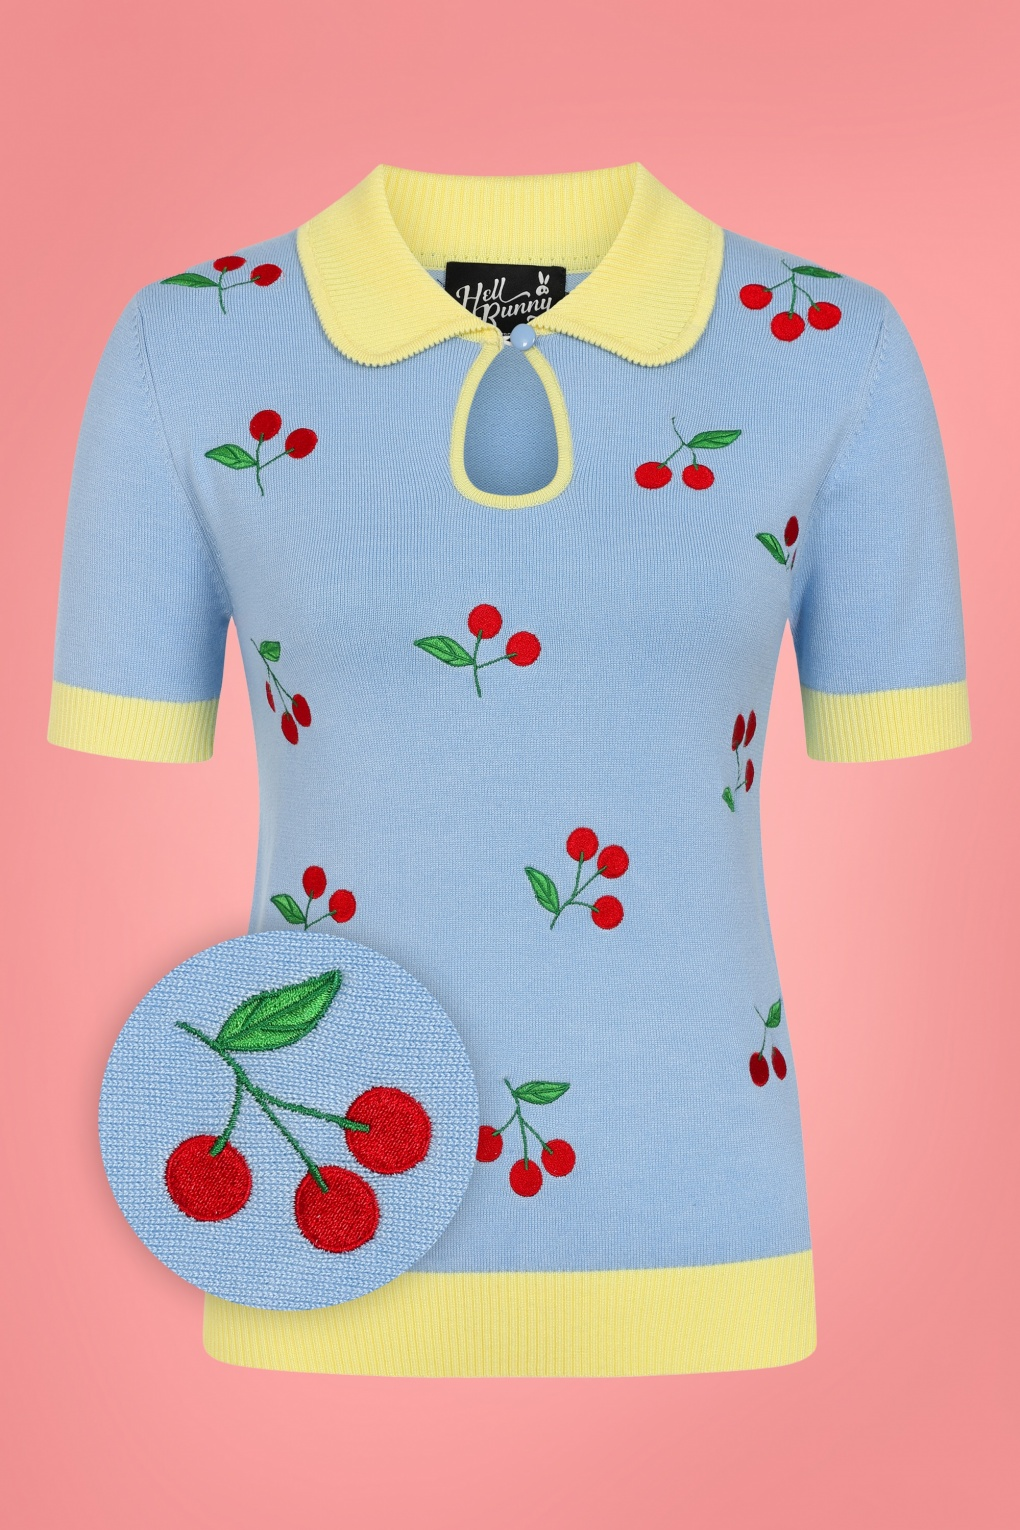 50s Shirts & Tops 50s Cherry Bonbon Top in Blue and Yellow  AT vintagedancer.com